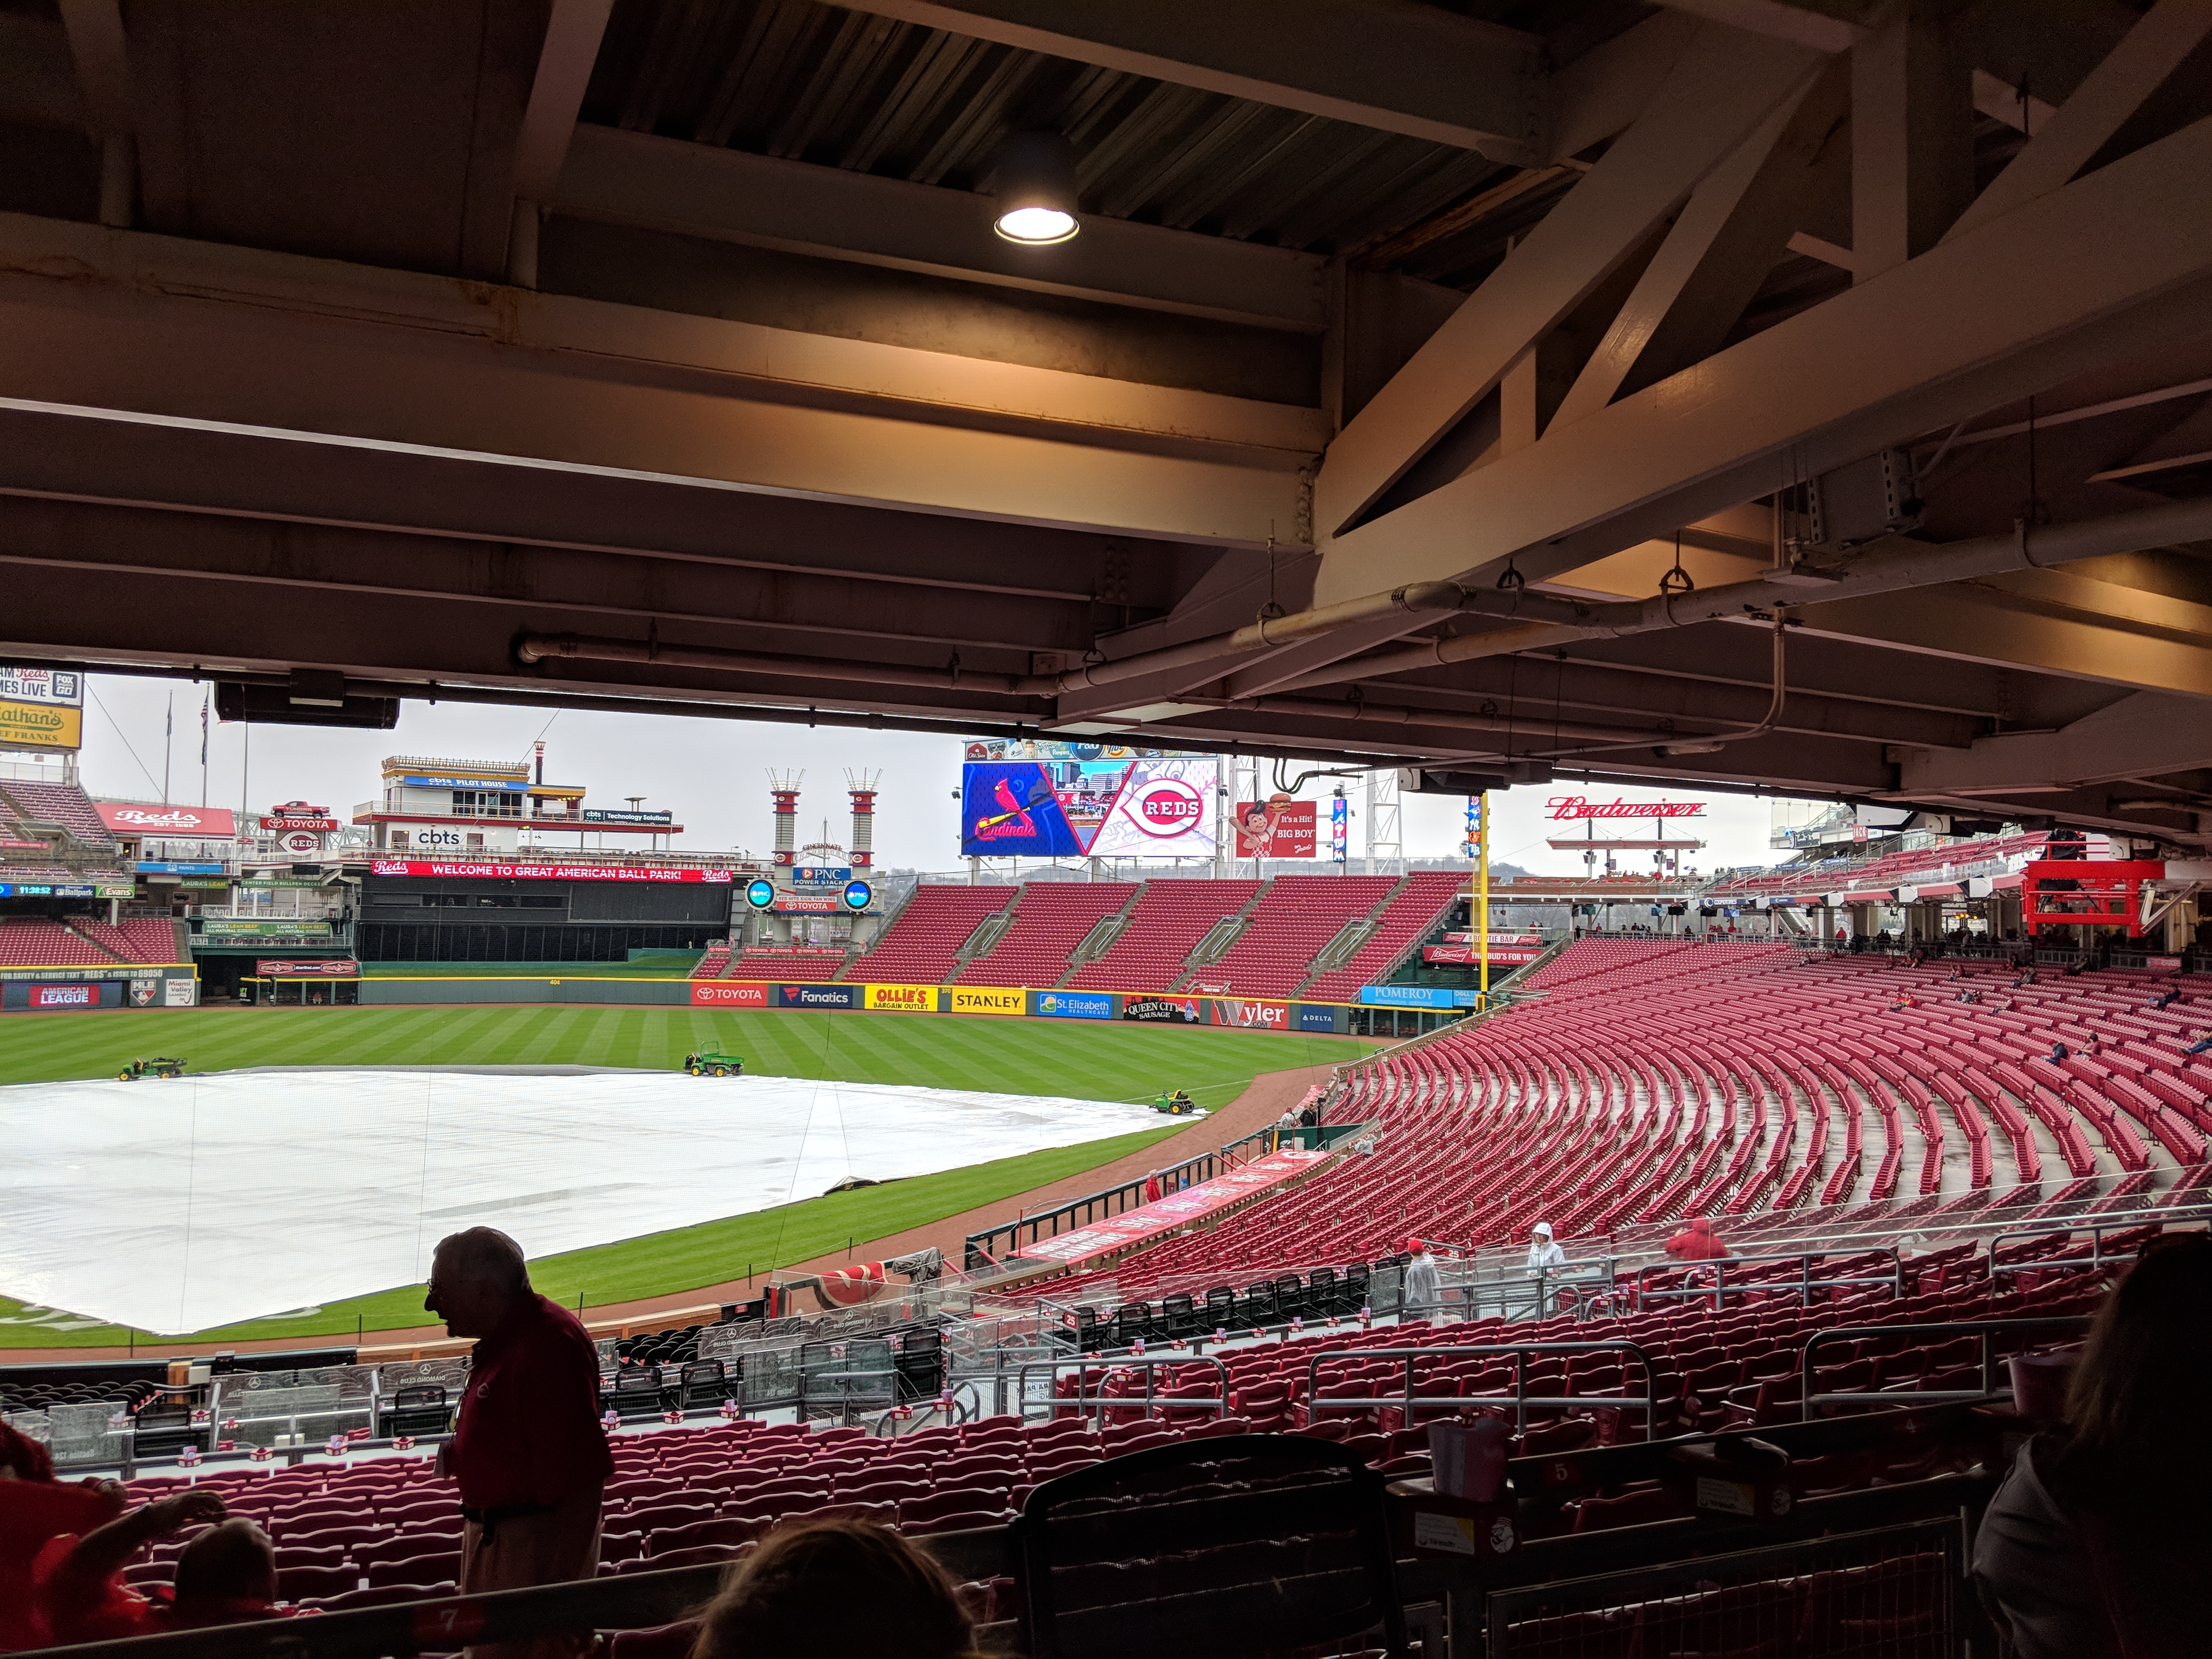 The View From Behind Home Plate: October 2012